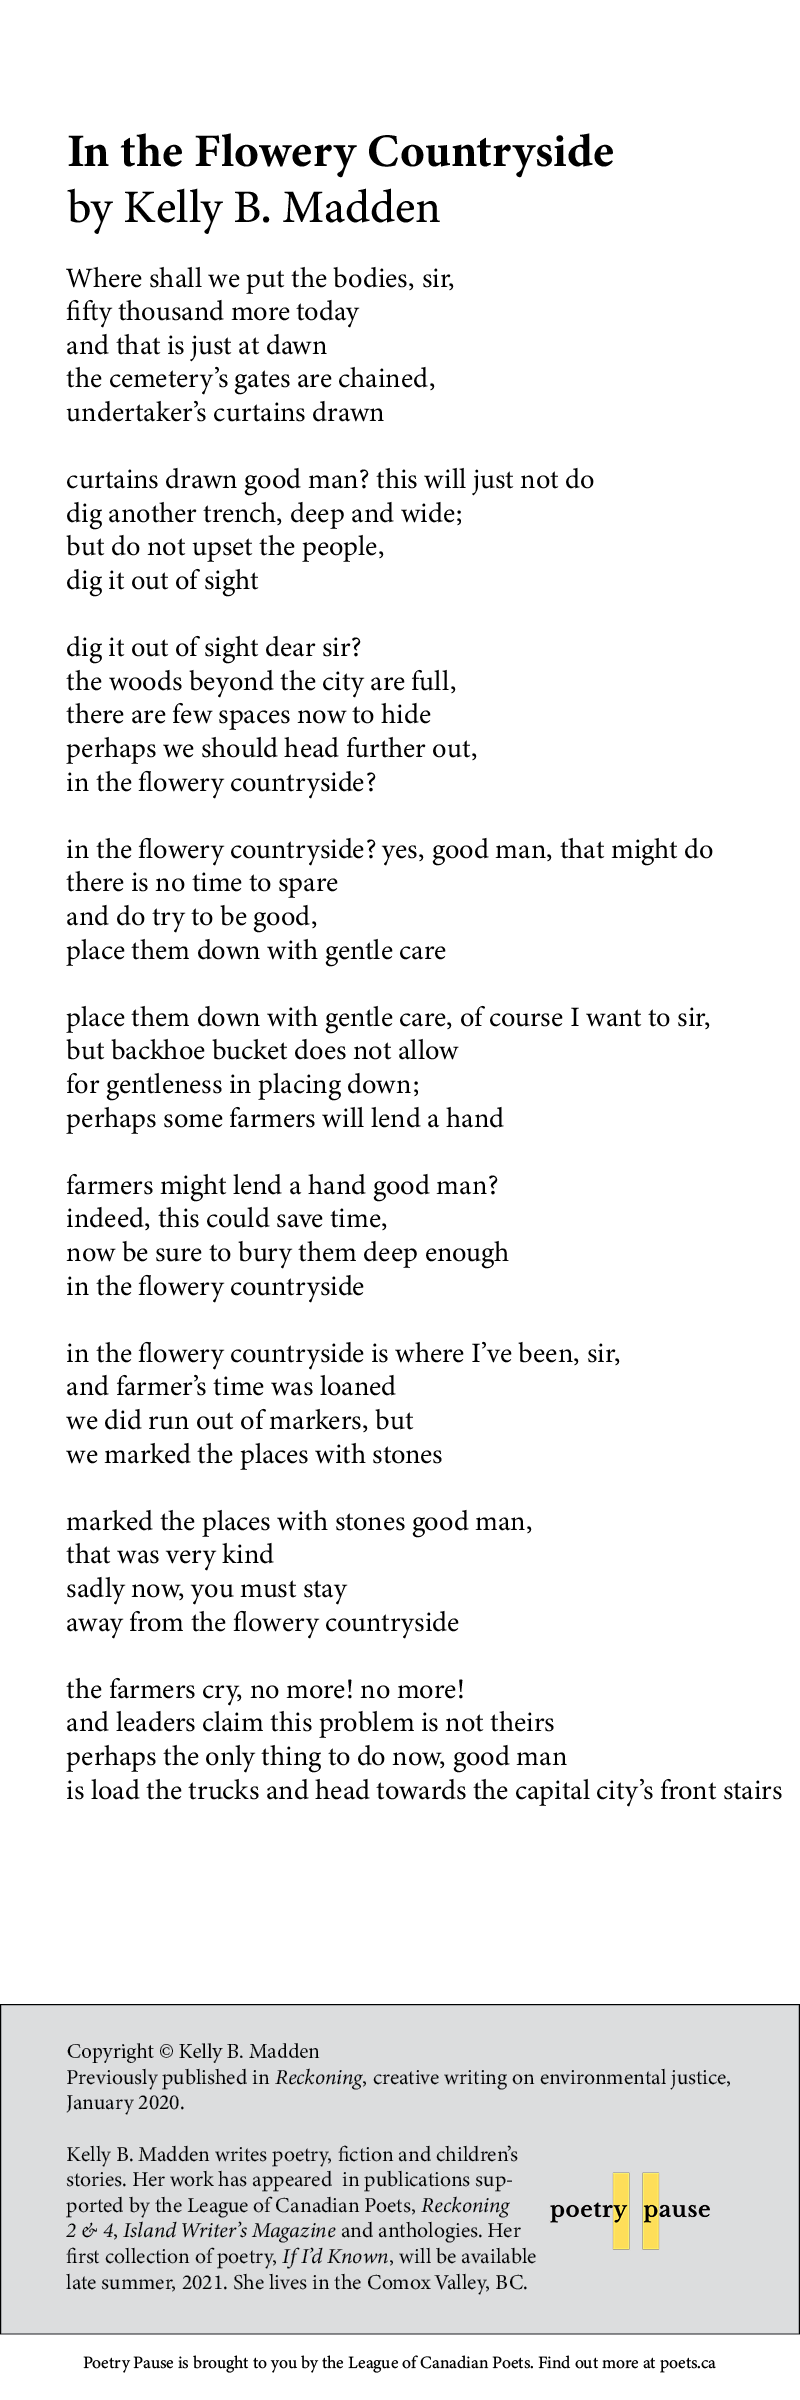 Poem title: In the Flowery Countryside Poet name: Kelly B. Madden Poem begins: Where shall we put the bodies, sir,  fifty thousand more today  and that is just at dawn the cemetery's gates are chained, undertaker's curtains drawn  curtains drawn good man? this will just not do dig another trench, deep and wide;  but do not upset the people,  dig it out of sight  dig it out of sight dear sir?  the woods beyond the city are full, there are few spaces now to hide perhaps we should head further out,  in the flowery countryside?  in the flowery countryside? yes, good man, that might do there is no time to spare and do try to be good,  place them down with gentle care  place them down with gentle care, of course I want to sir,  but backhoe bucket does not allow  for gentleness in placing down; perhaps some farmers will lend a hand  farmers might lend a hand good man?  indeed, this could save time, now be sure to bury them deep enough   in the flowery countryside  in the flowery countryside is where I've been, sir,  and farmer's time was loaned  we did run out of markers, but   we marked the places with stones  marked the places with stones good man,  that was very kind sadly now, you must stay  away from the flowery countryside  the farmers cry, no more! no more! and leaders claim this problem is not theirs perhaps the only thing to do now, good man is load the trucks and head towards the capital city's front stairs End of poem.  Credits: Copyright © Kelly B. Madden Previously published in Reckoning, creative writing on environmental justice, January 2020.  Kelly B. Madden writes poetry, fiction and children's stories. Her work has appeared  in publications supported by the League of Canadian Poets, Reckoning 2 & 4, Island Writer's Magazine and anthologies. Her first collection of poetry, If I'd Known, will be available late summer, 2021. She lives in the Comox Valley, BC.